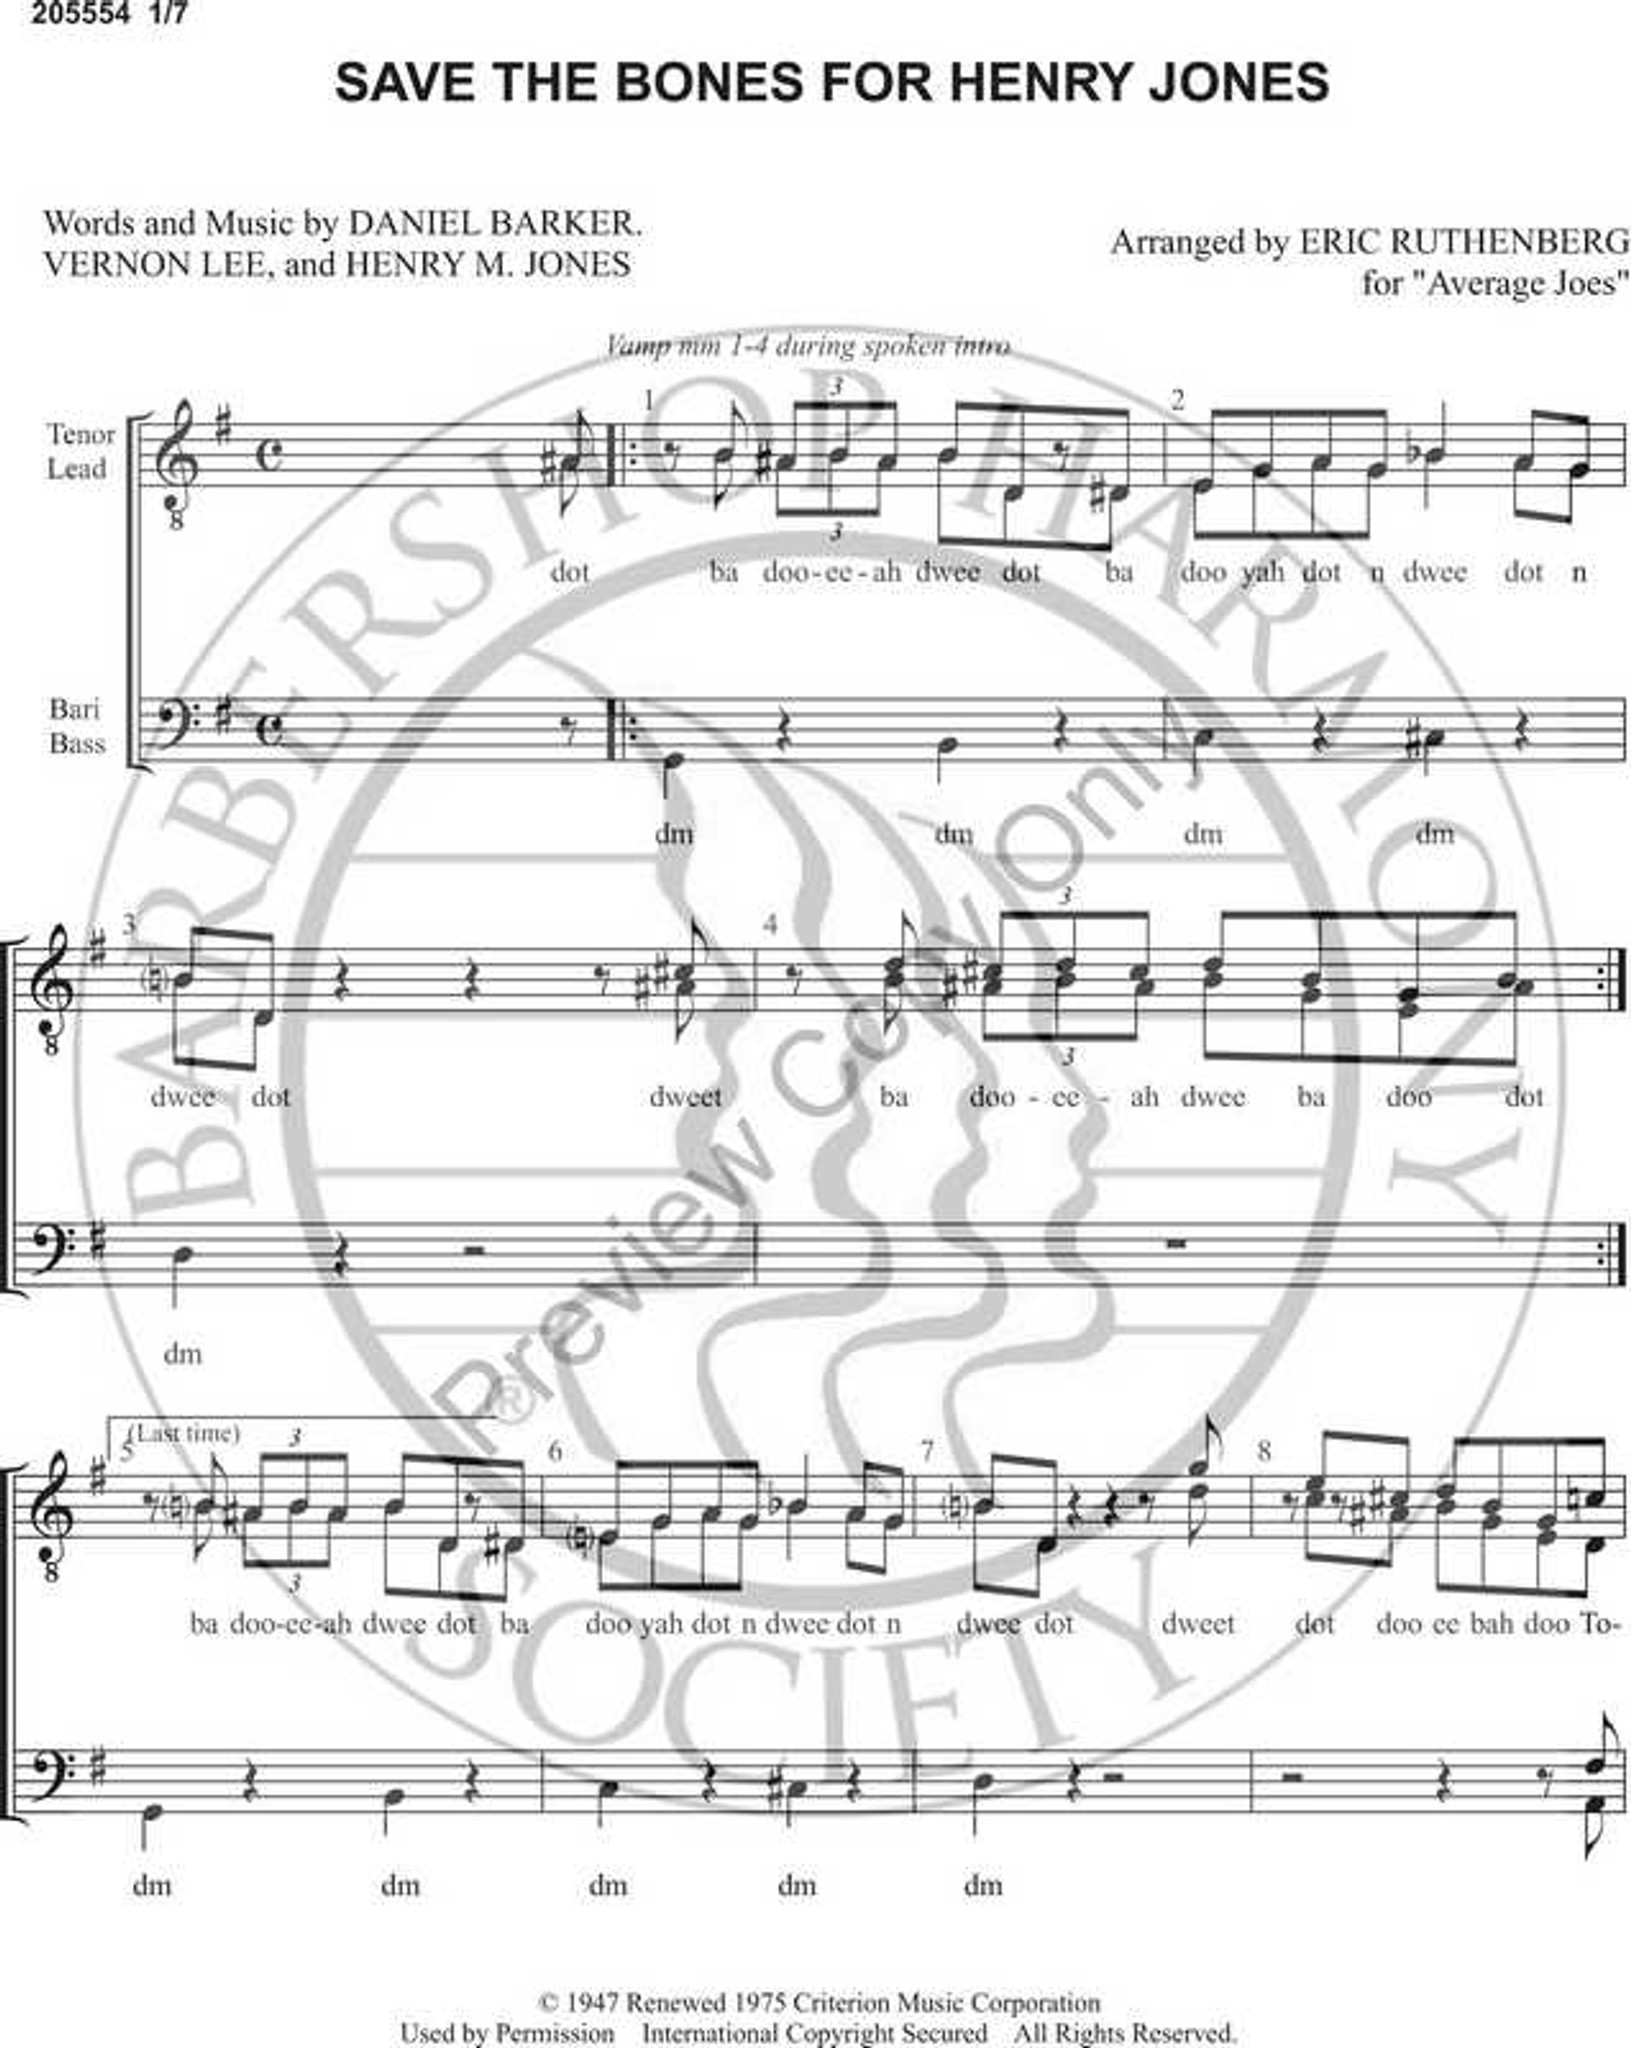 small resolution of save the bones for henry jones 1 ttbb arr eric ruthenberg download unpub barbershop harmony society